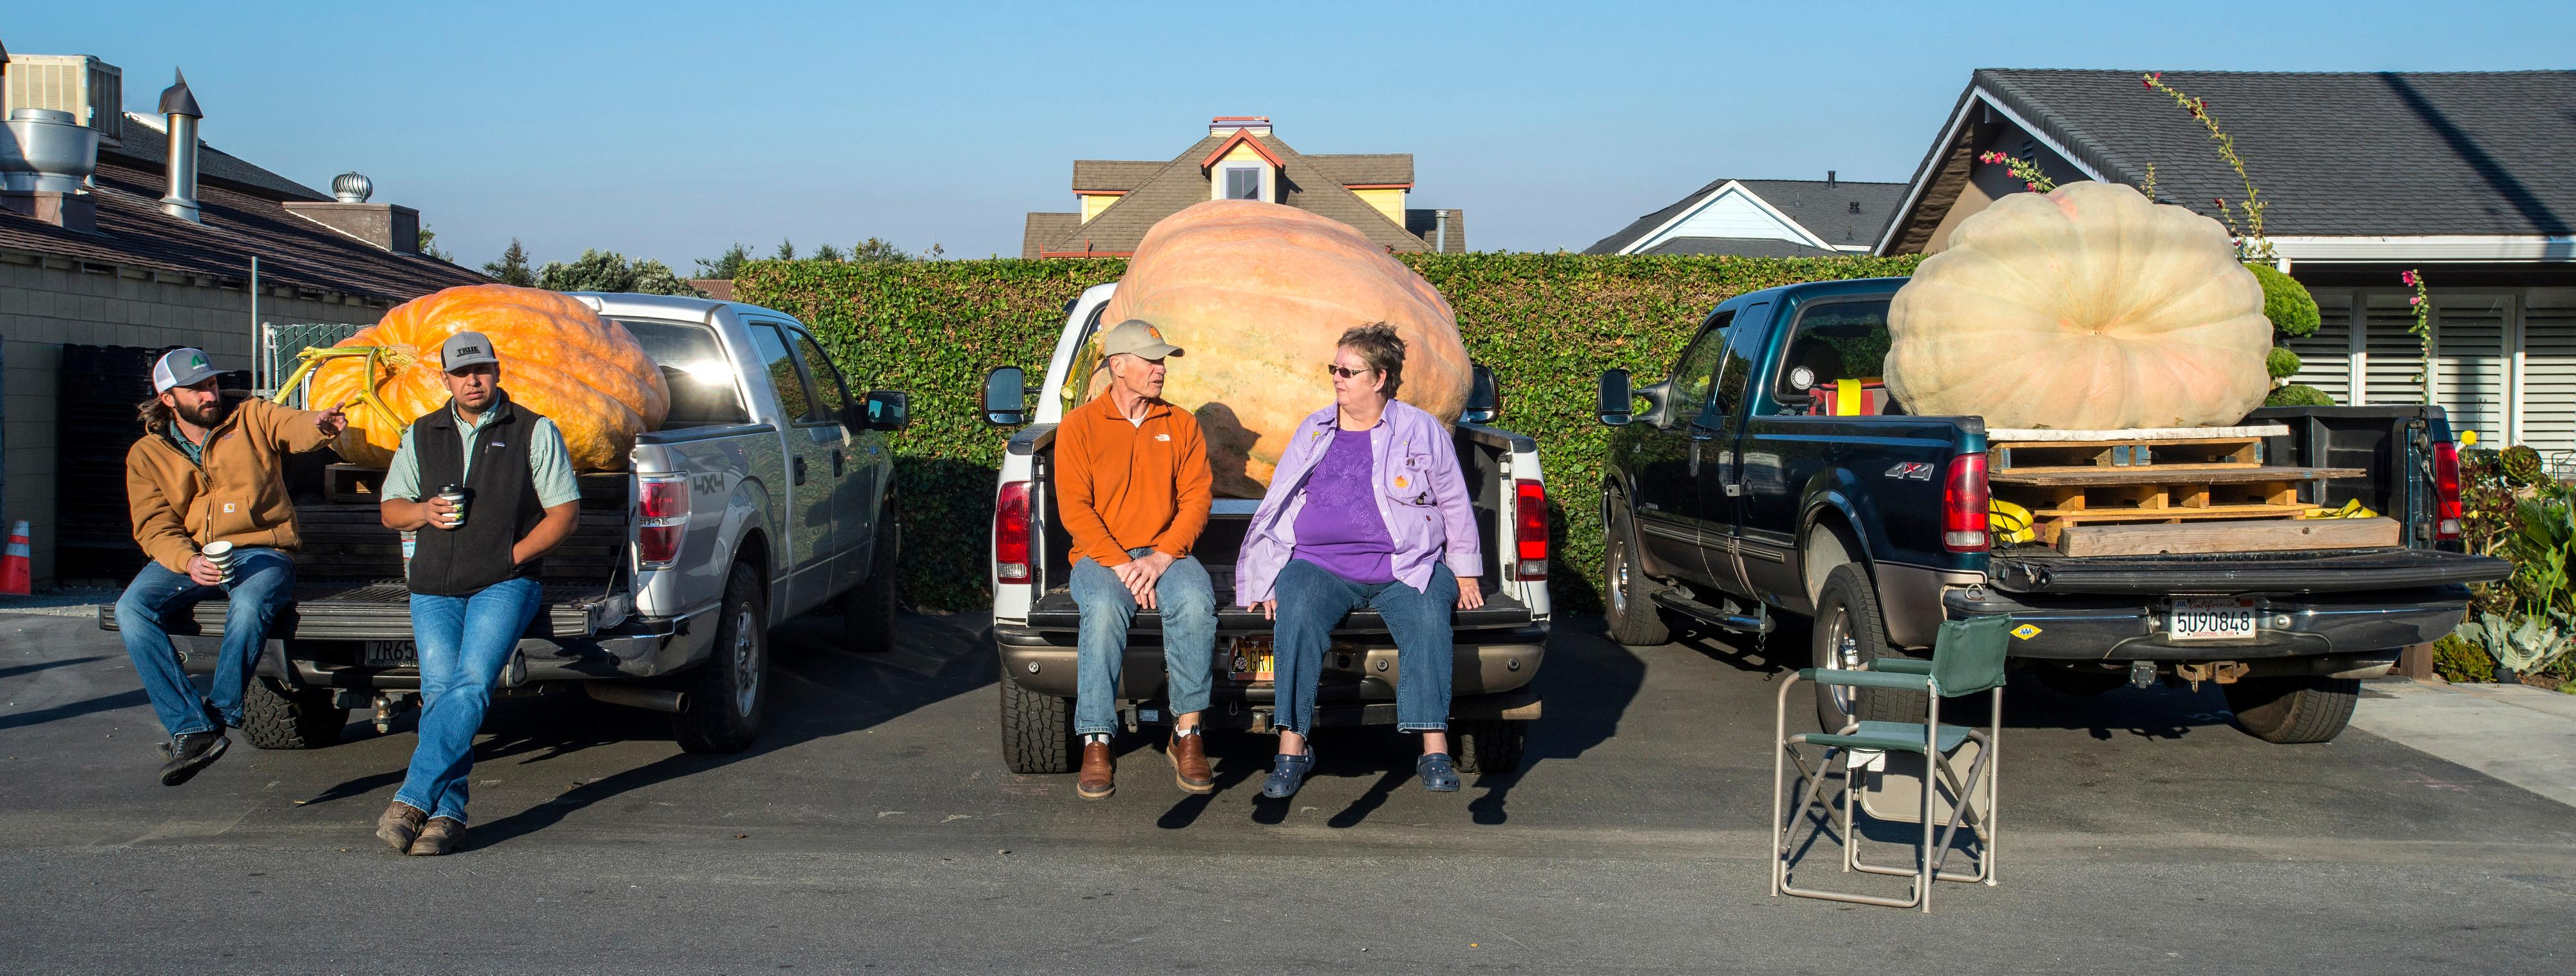 Joel and Mari Lou Holland, center, of Sumner, Wash., sit on the back of their truck as they wait for the start of the 44th World Championship Pumpkin Weigh-Off in Half Moon Bay, Calif., on Monday, Oct.  9, 2017. Holland went on to win the competition with his pumpkin weighing in at 2363 pounds.  (Mark Rightmire/The Orange County Register via AP)